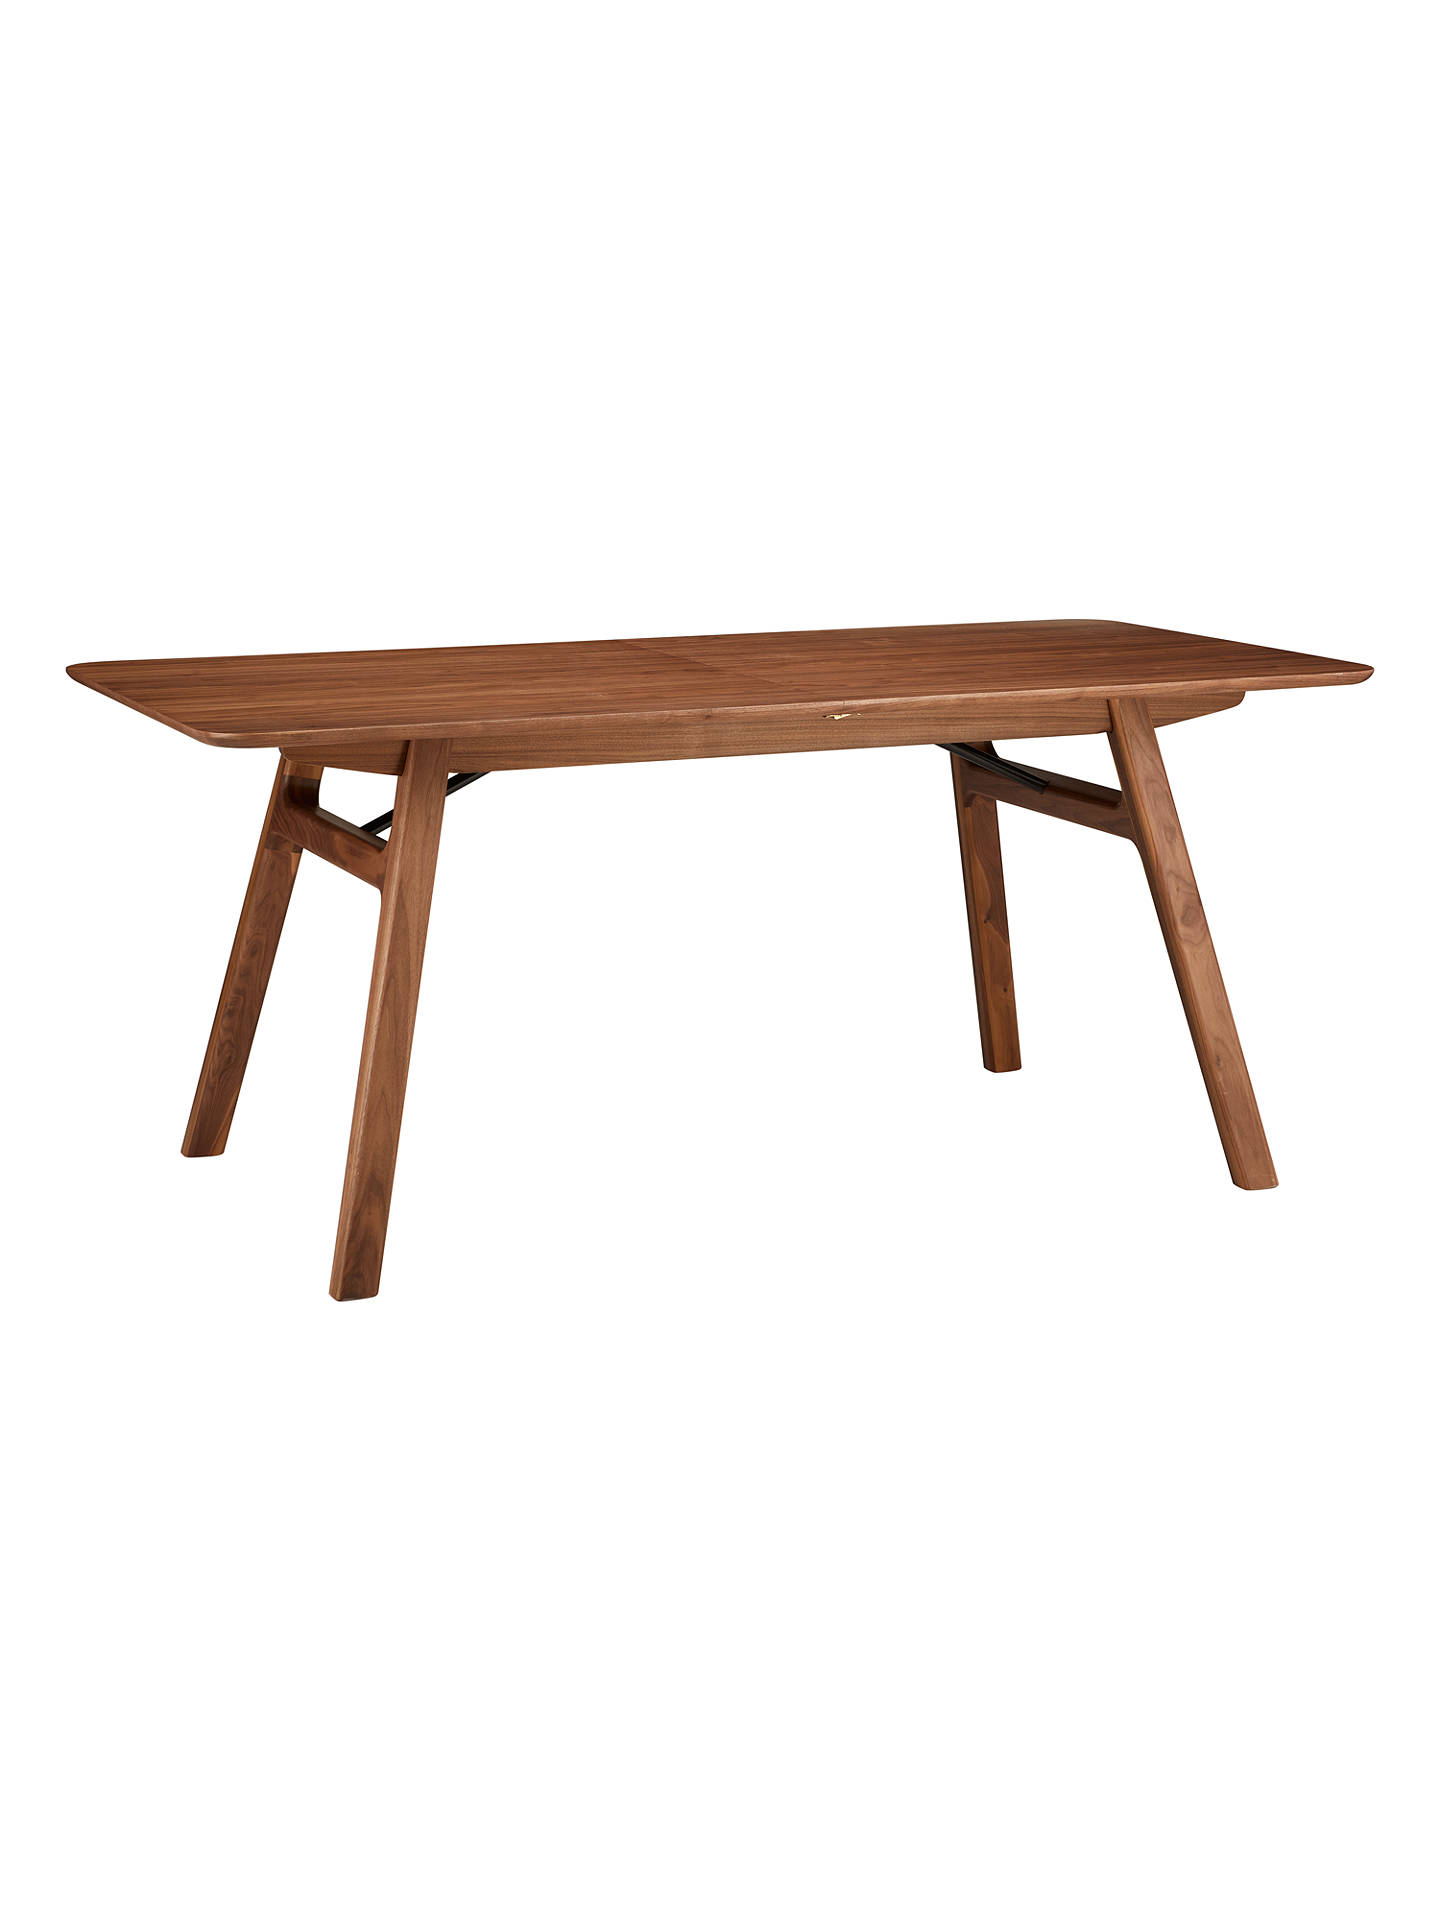 BuyDesign Project By John Lewis No036 6 8 Seater Extending Dining Table